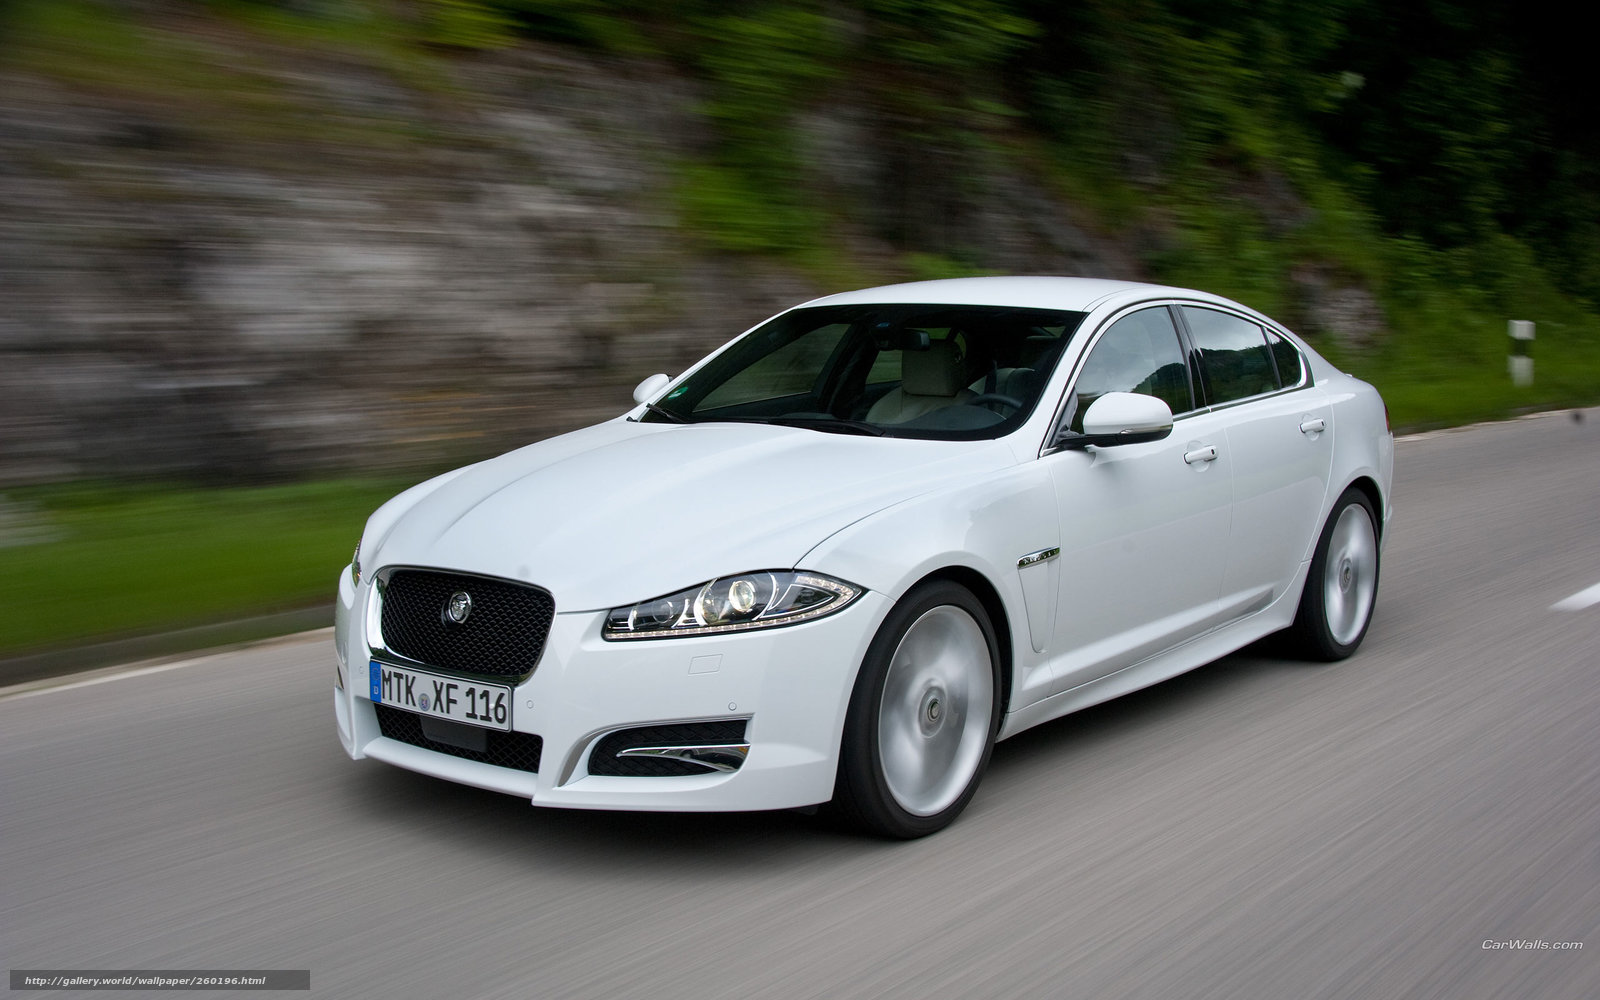 Jaguar Cars Images Free Download Free of charge and without